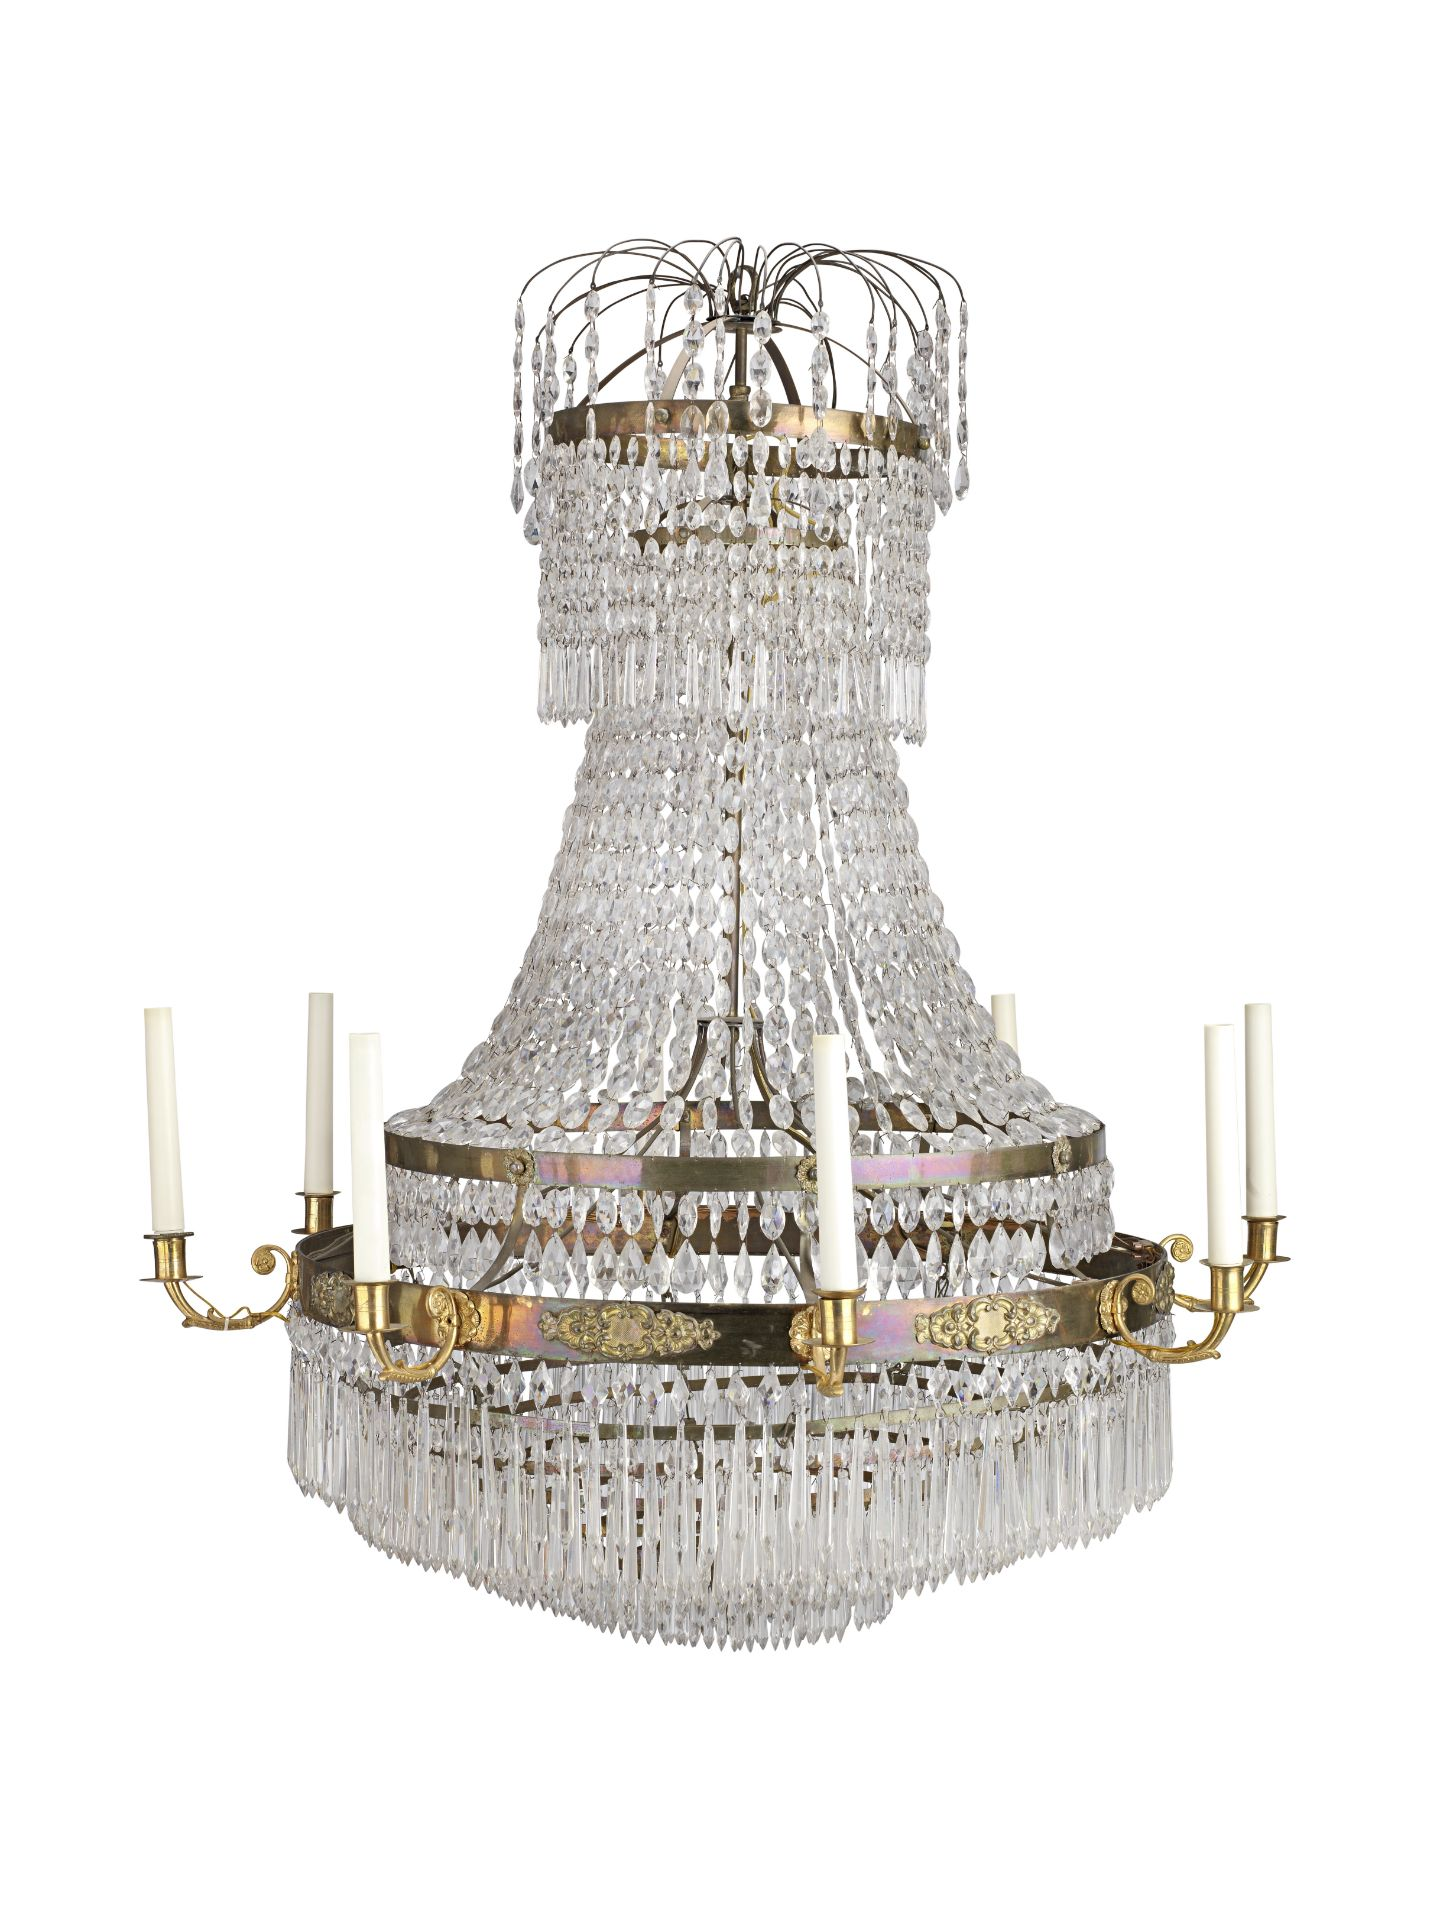 Los 88 - A French late 19th century gilt bronze and cut-glass eight-light chandelier